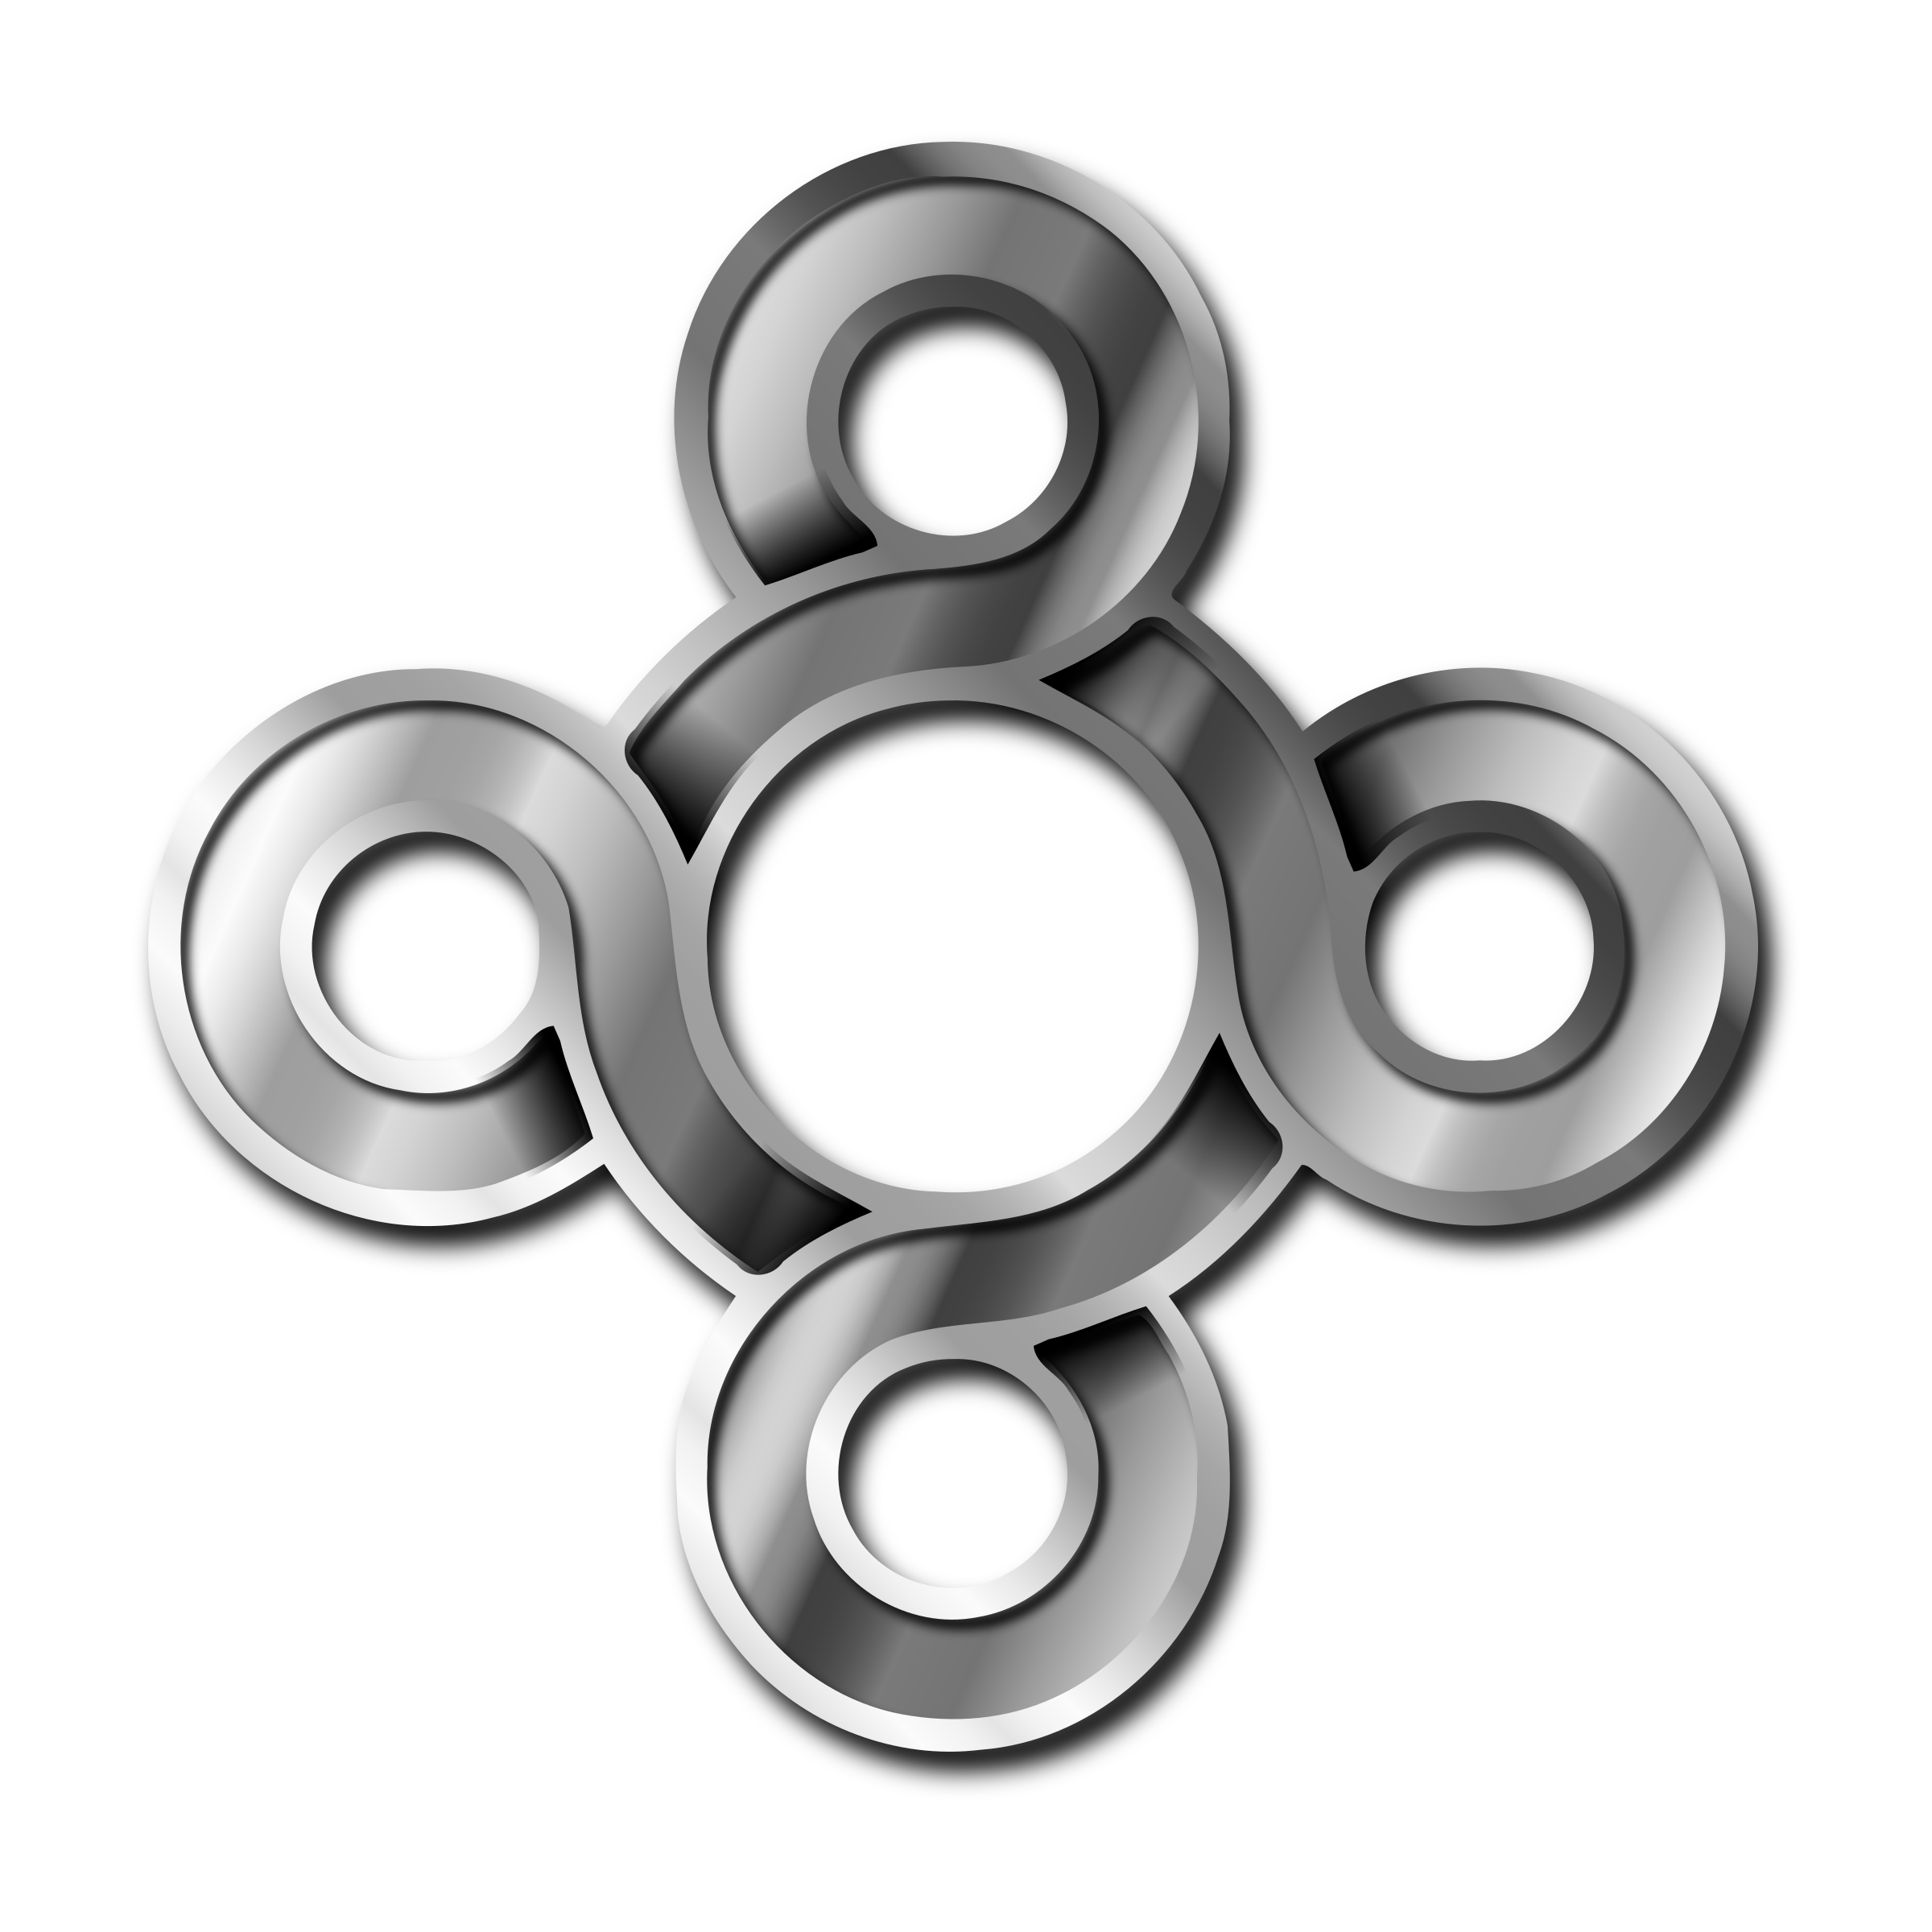 Metallic circle png. Loopy icons free and